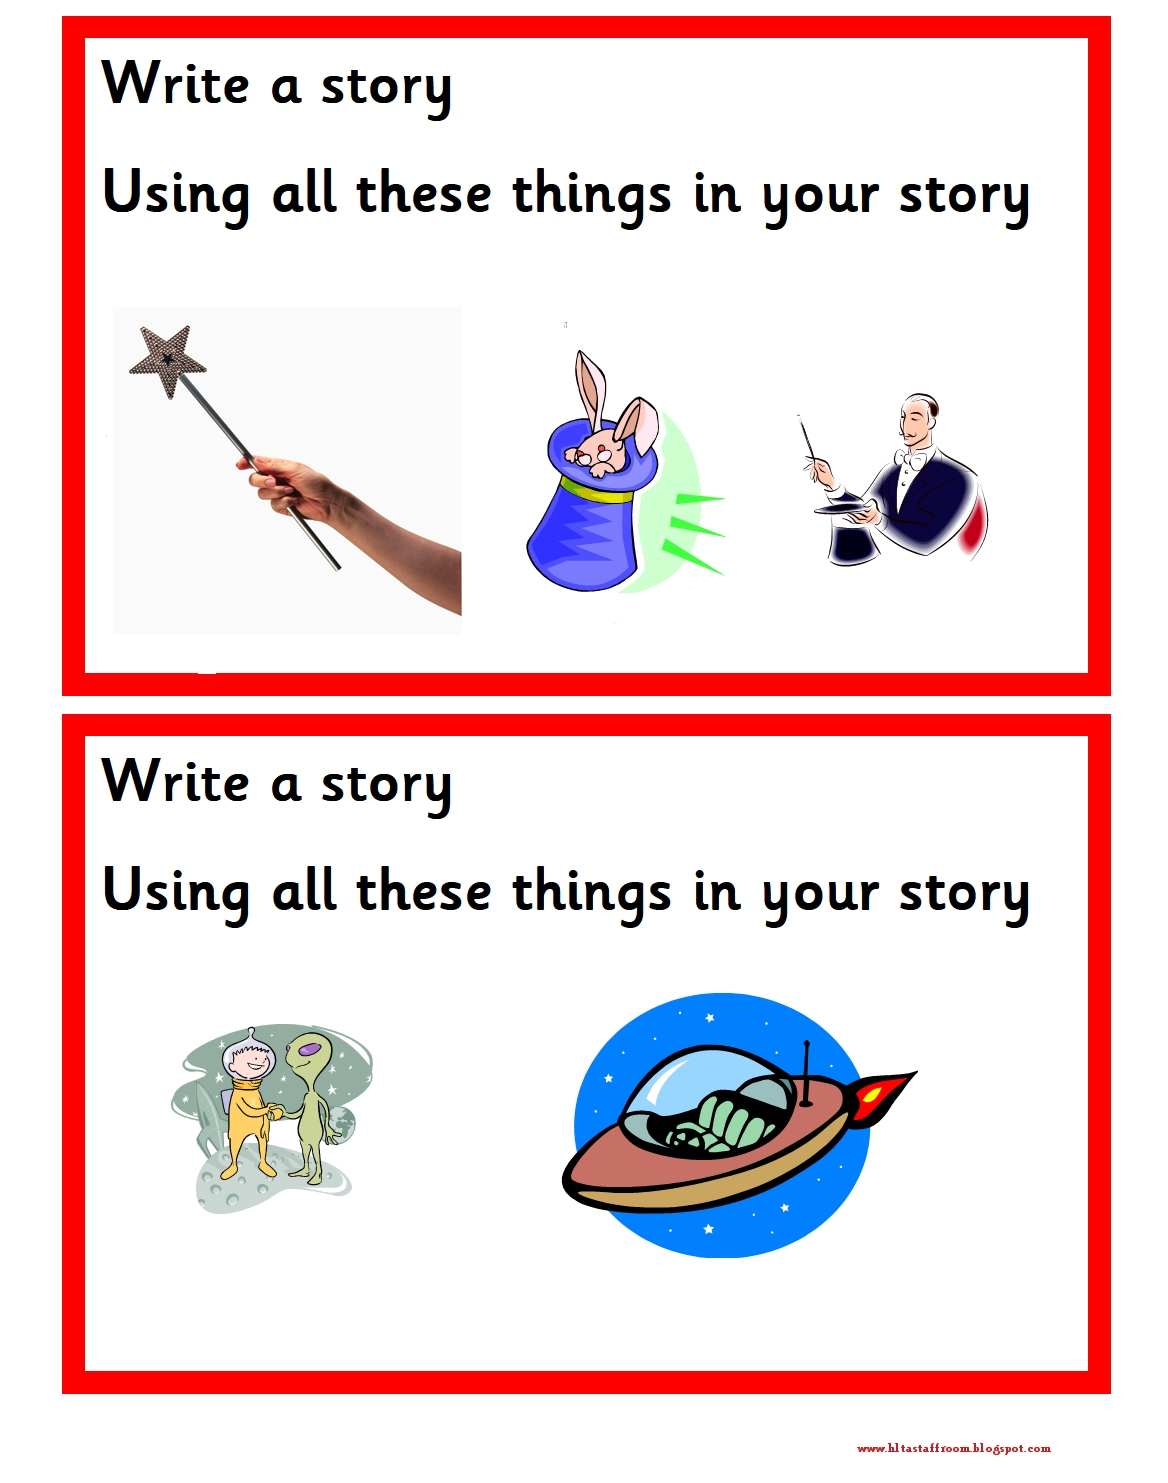 prompts for creative writing ks2 10 visual prompts for narrative/story writing great for a one-off lesson or cover work (ks2/ks3/ks4.